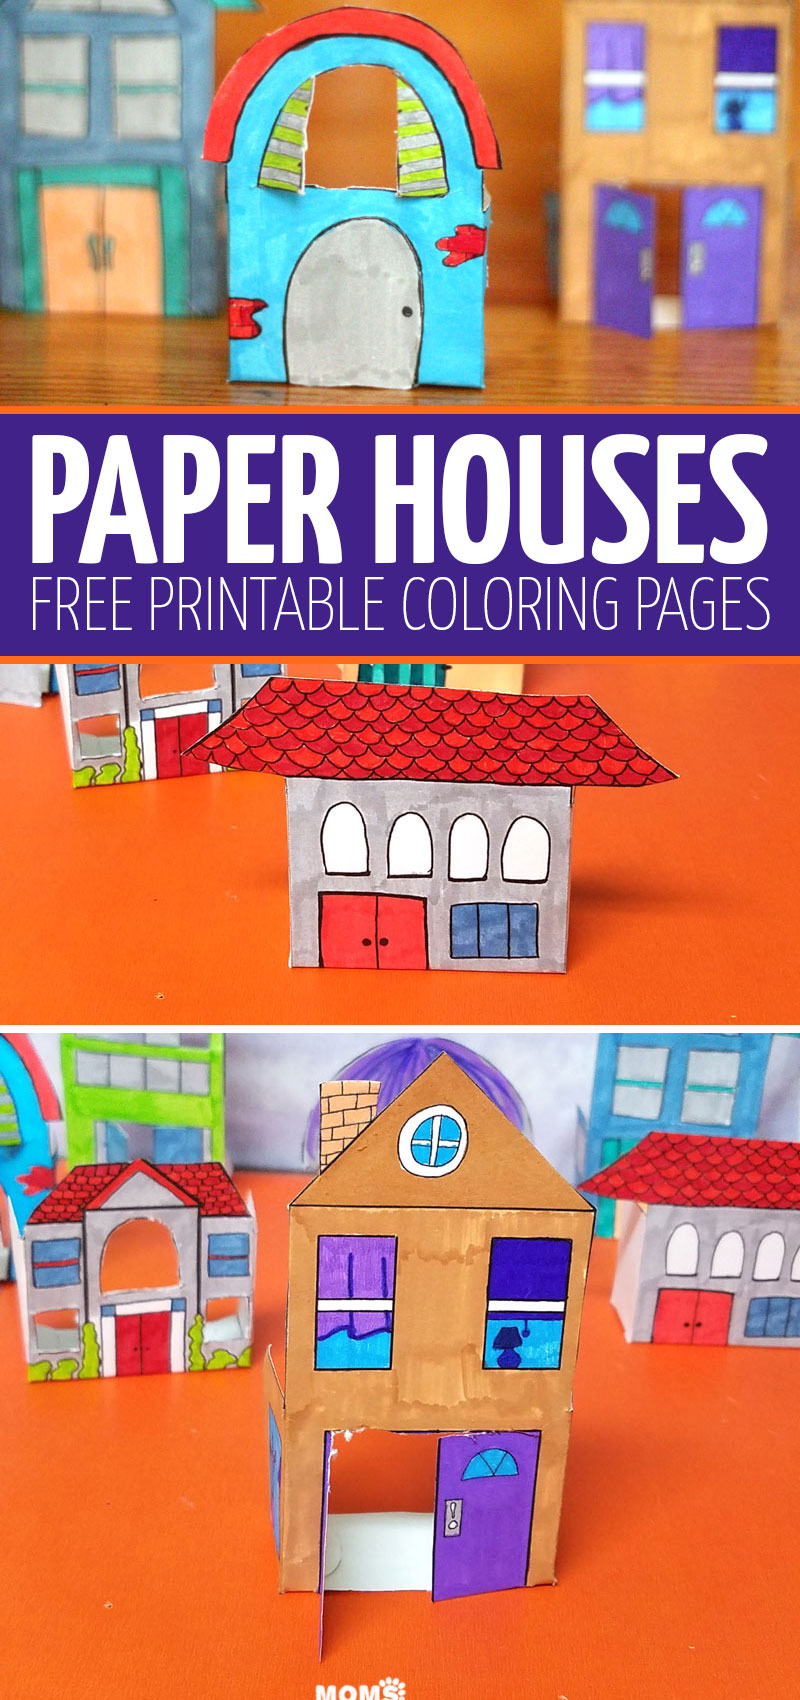 Click to download your free printable paper houses - a fun paper toy that can also be used as Christmas or holiday decorations!